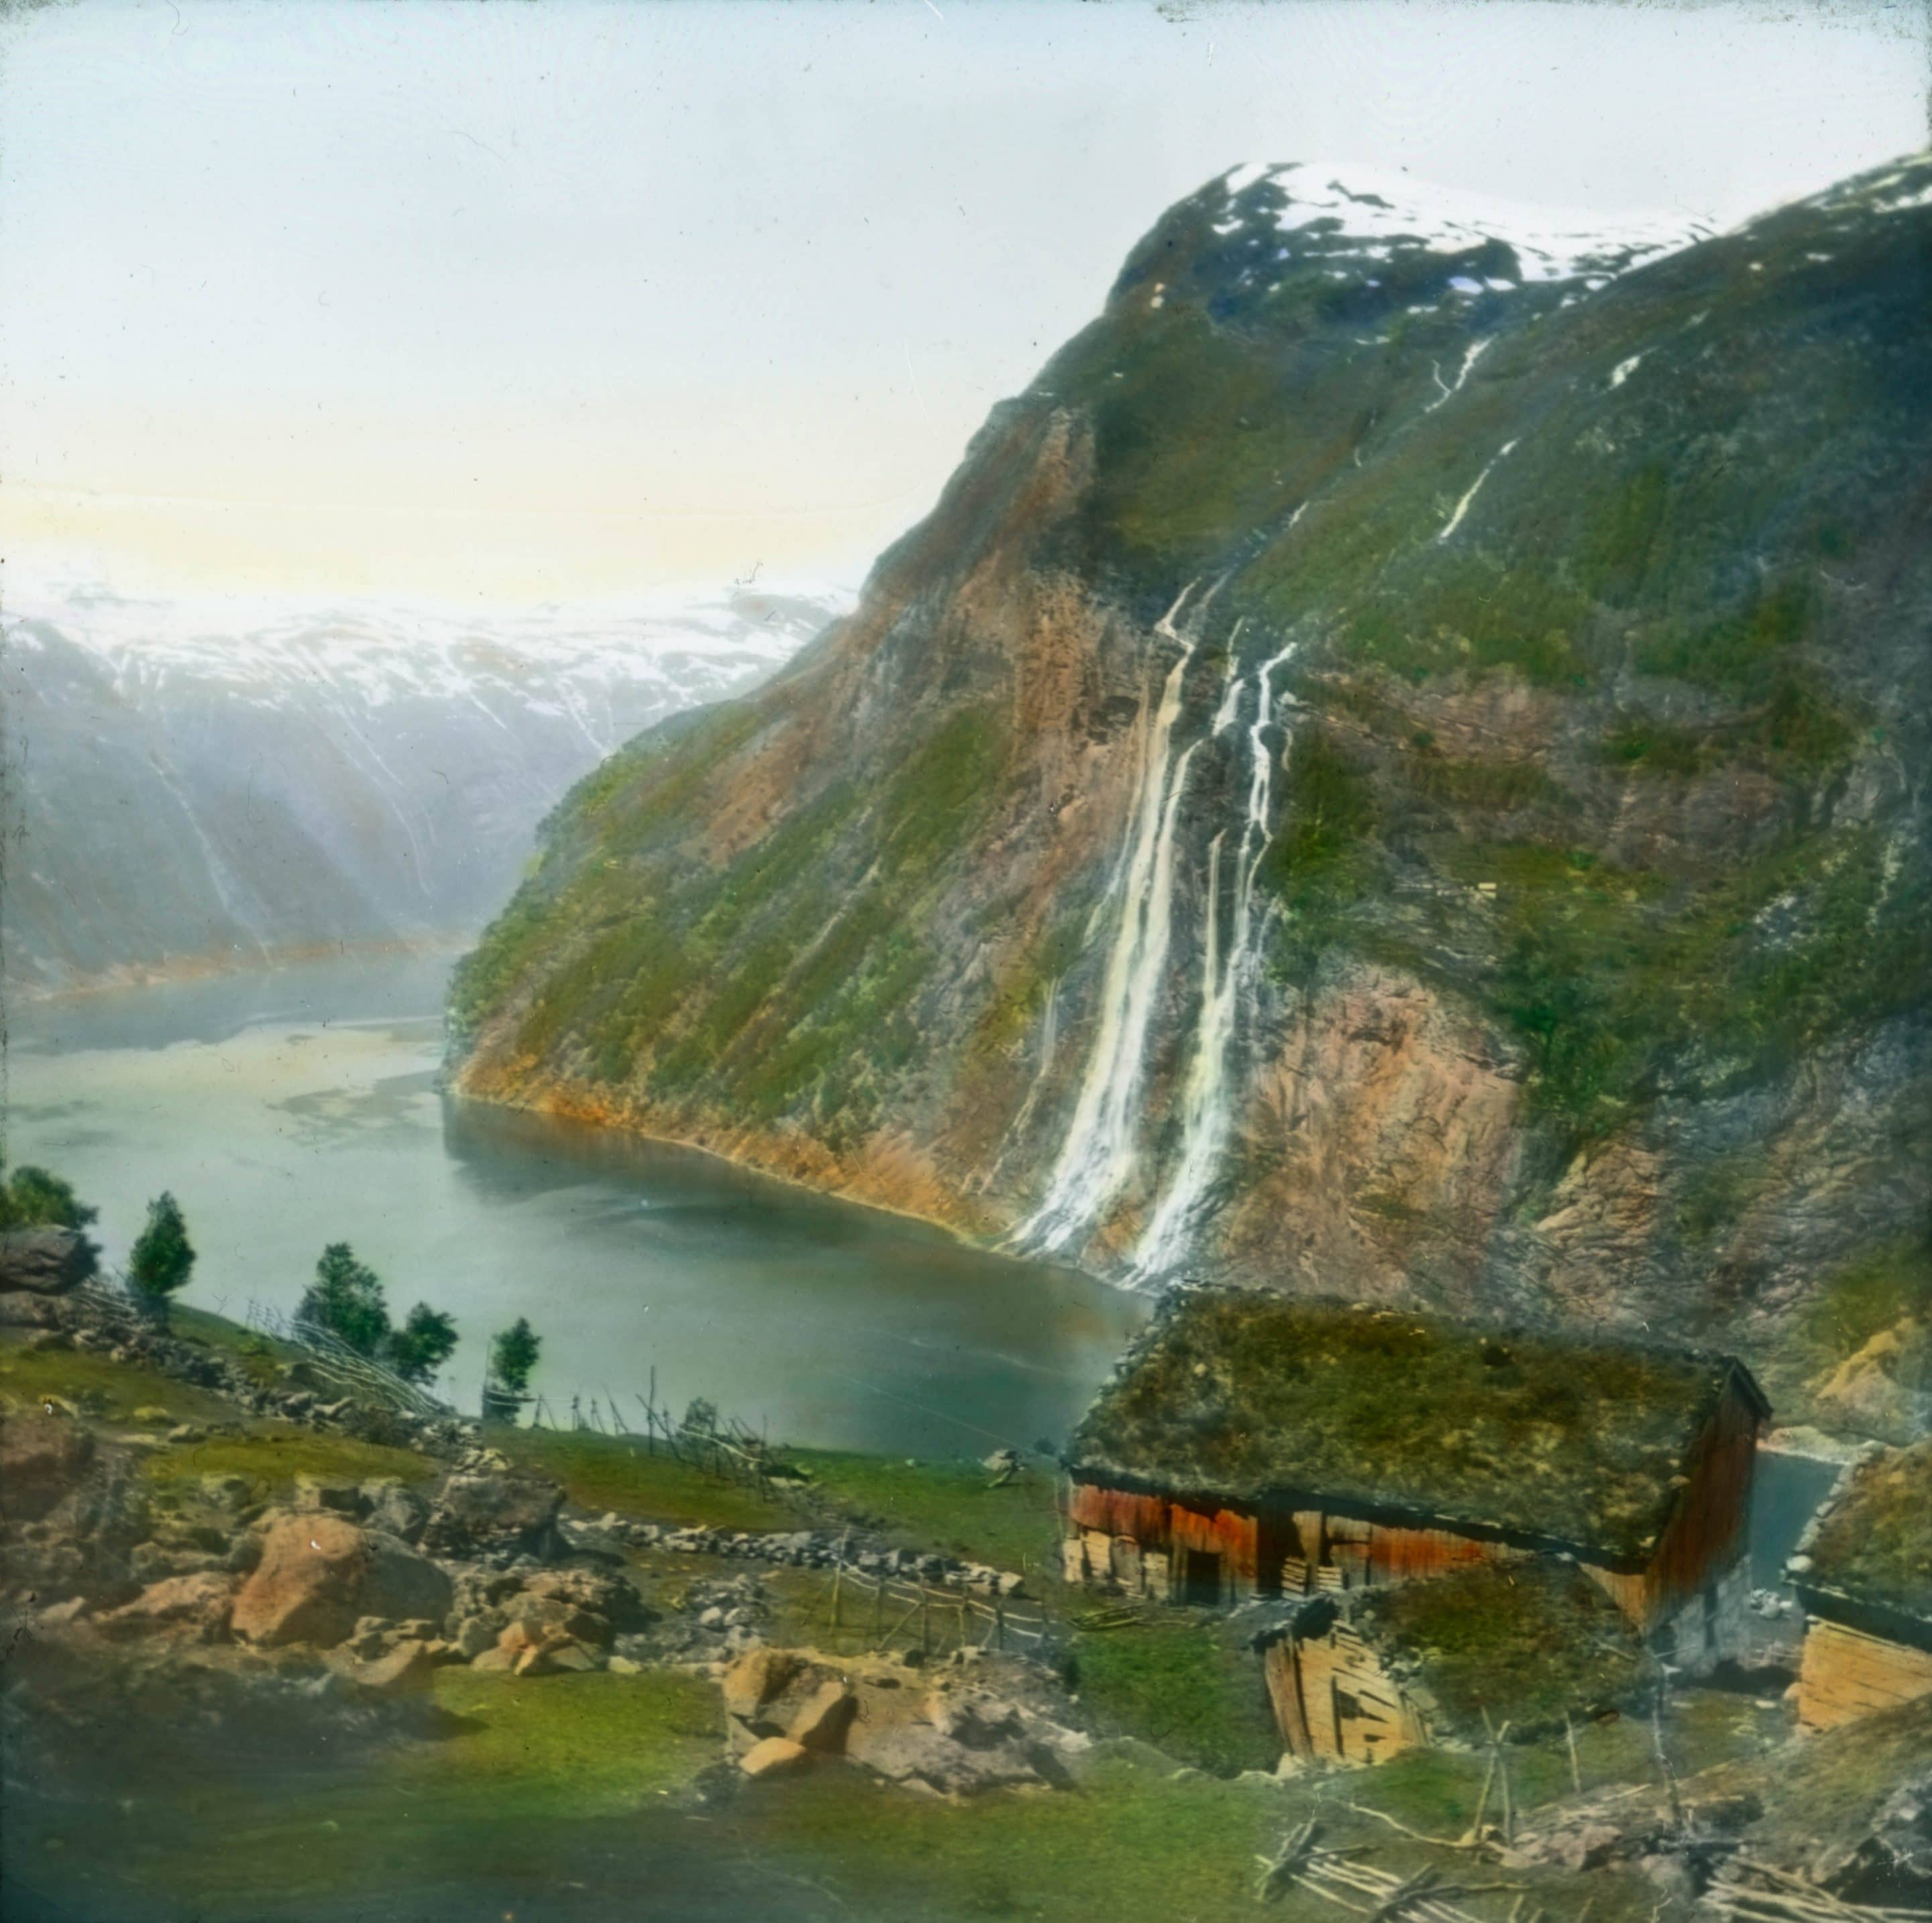 The Seven Sisters waterfall and the Geiranger fjord. A hand-coloured photo from the early 1900s - taken from above the Skagenflå farm, today a tourist attraction - located in Stranda, Møre og Romsdal, Norway. | Photo: Anders Beer Wilse - digitaltmuseum.no DEX_W_00374 - cc by.